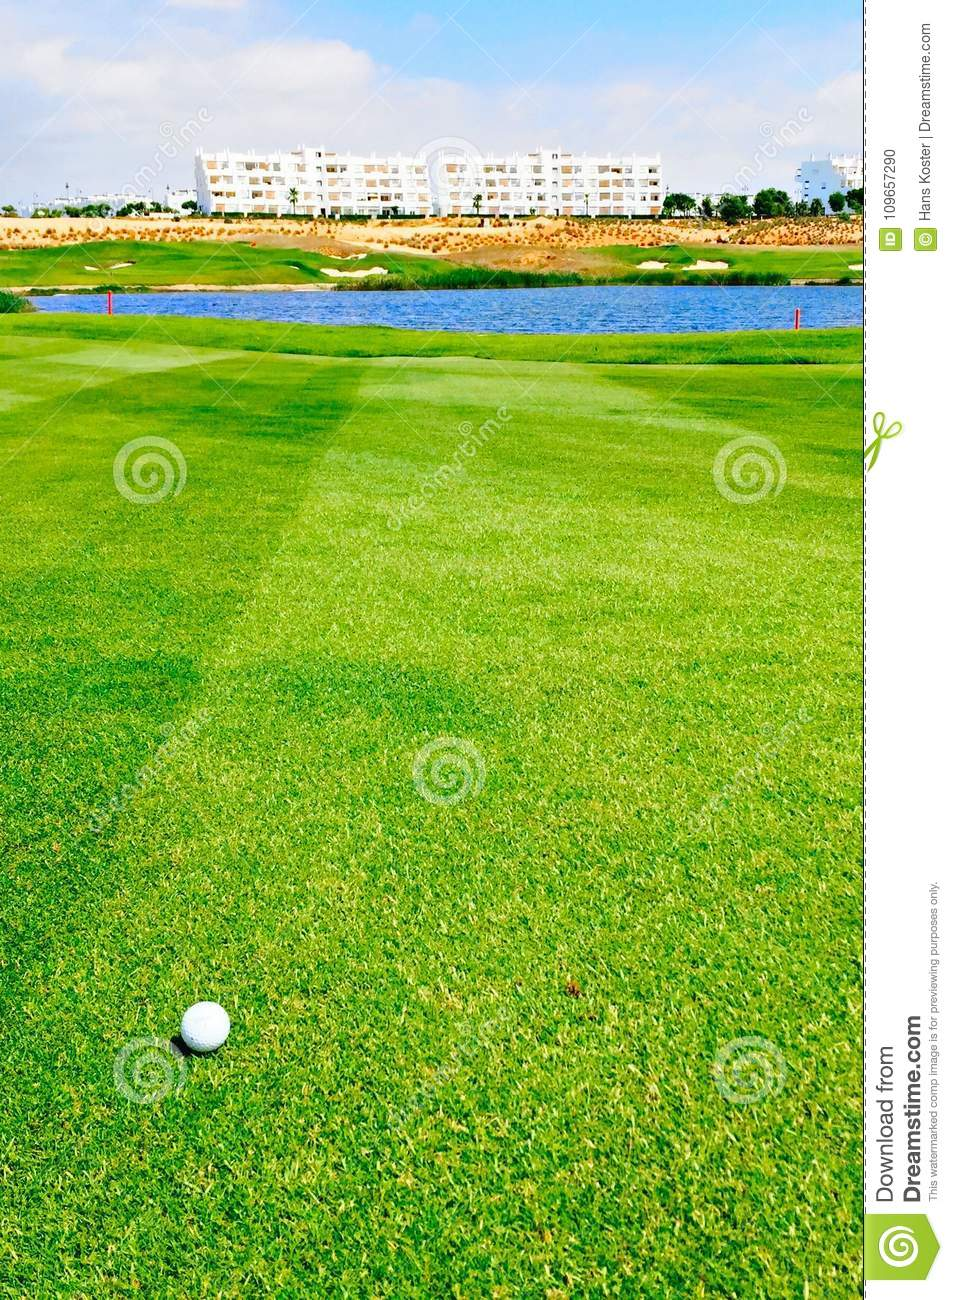 Golf ball on fairway with water hazard in front of green